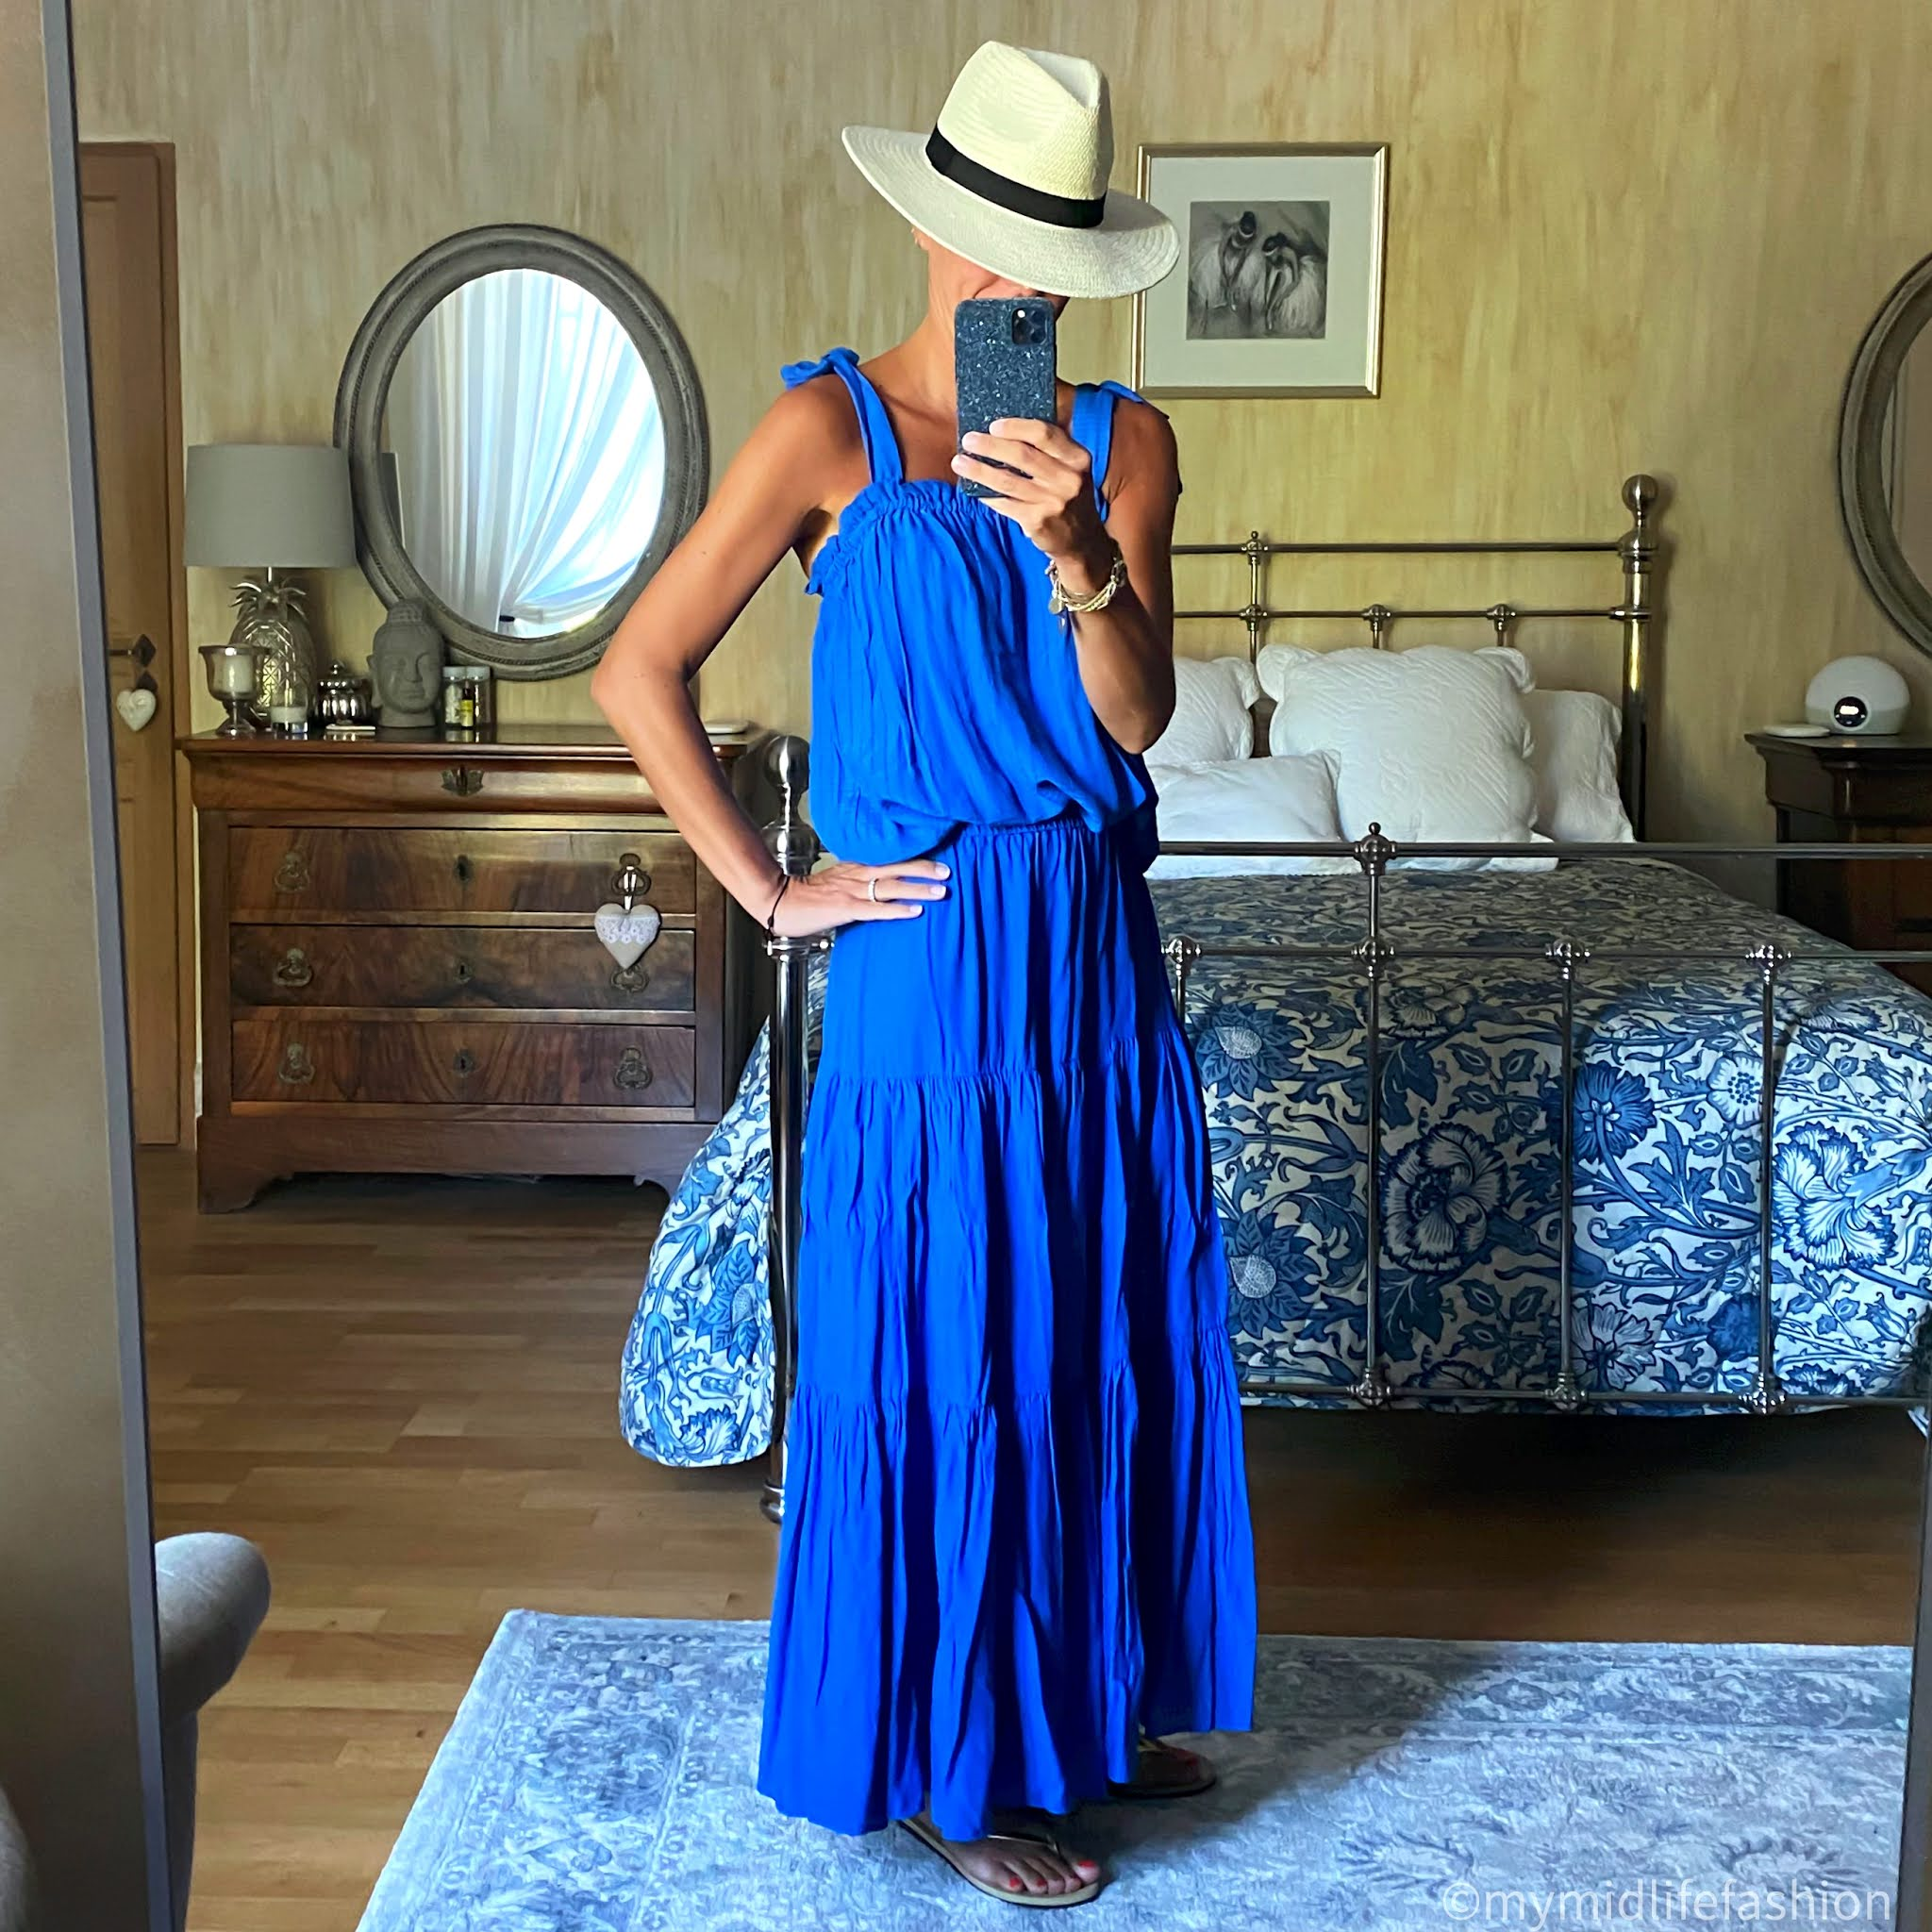 my midlife fashion, zara Panama hat, h and m shoulder tie camisole, h and m tiered maxi skirt, havanans slim fit gold flip flops